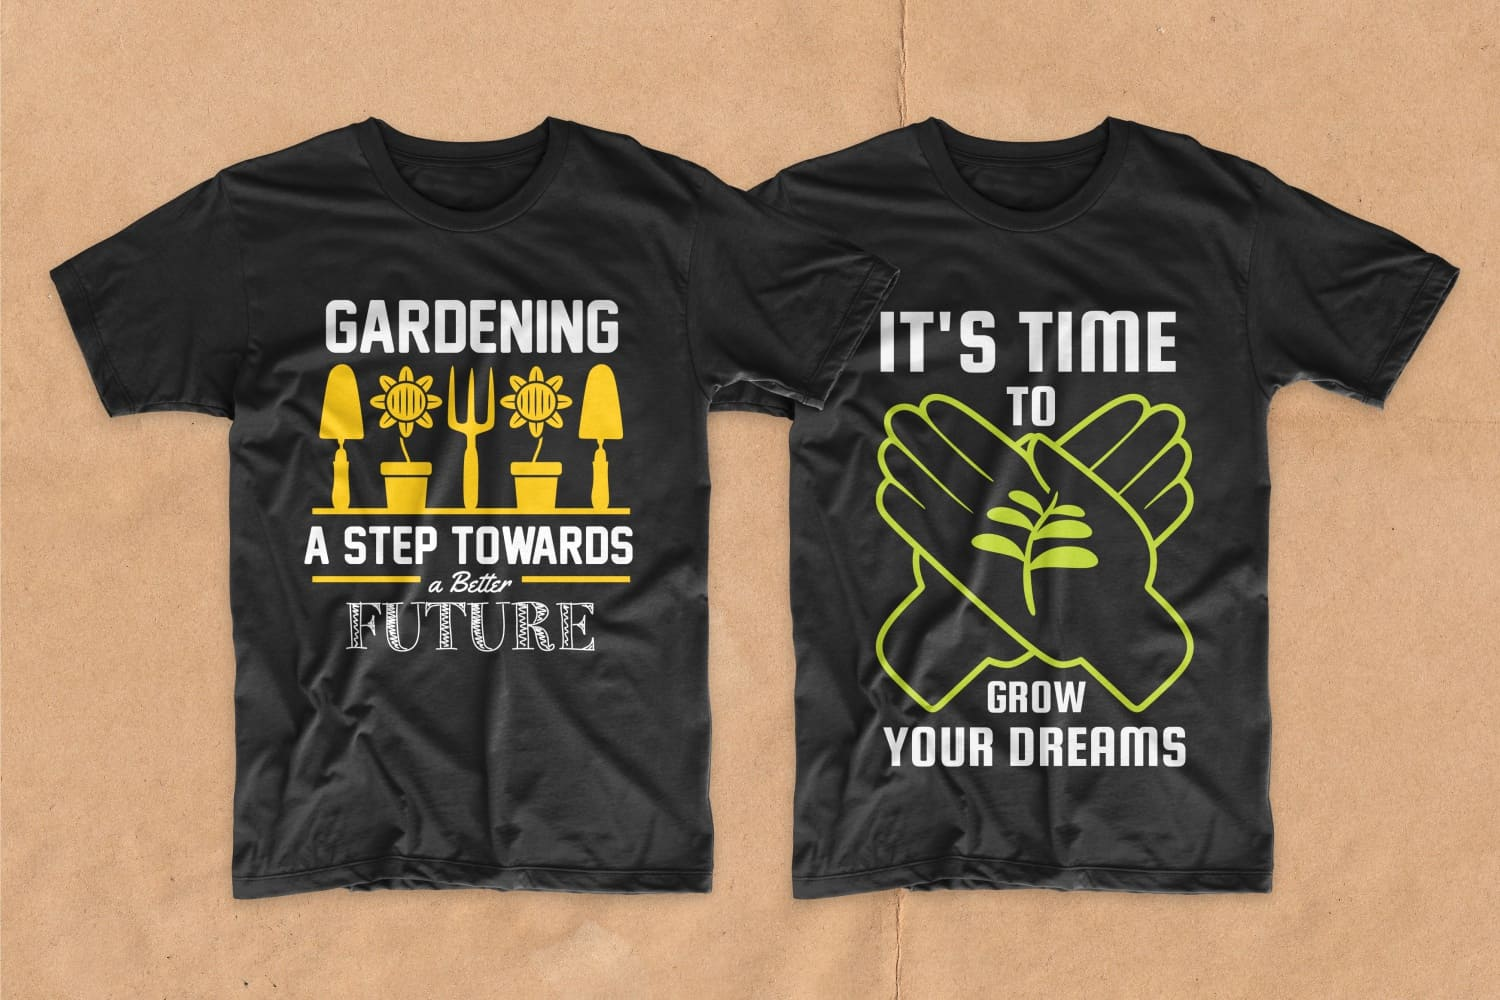 Two black T-shirts with plants.